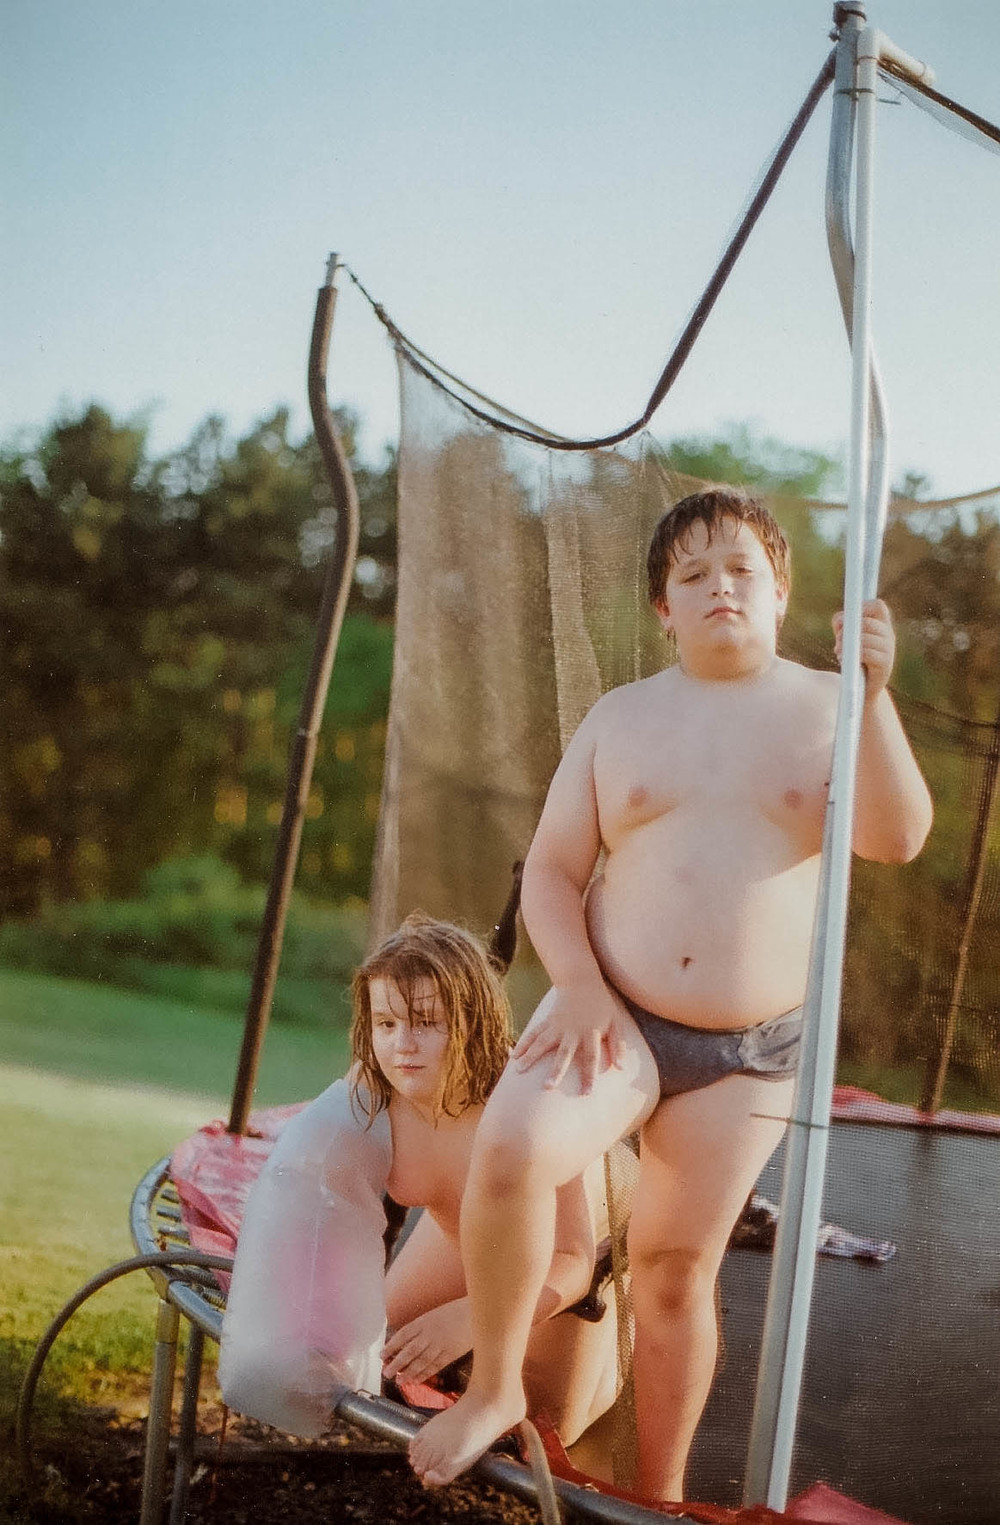 Meredith and Hunter on Trampoline, 2014